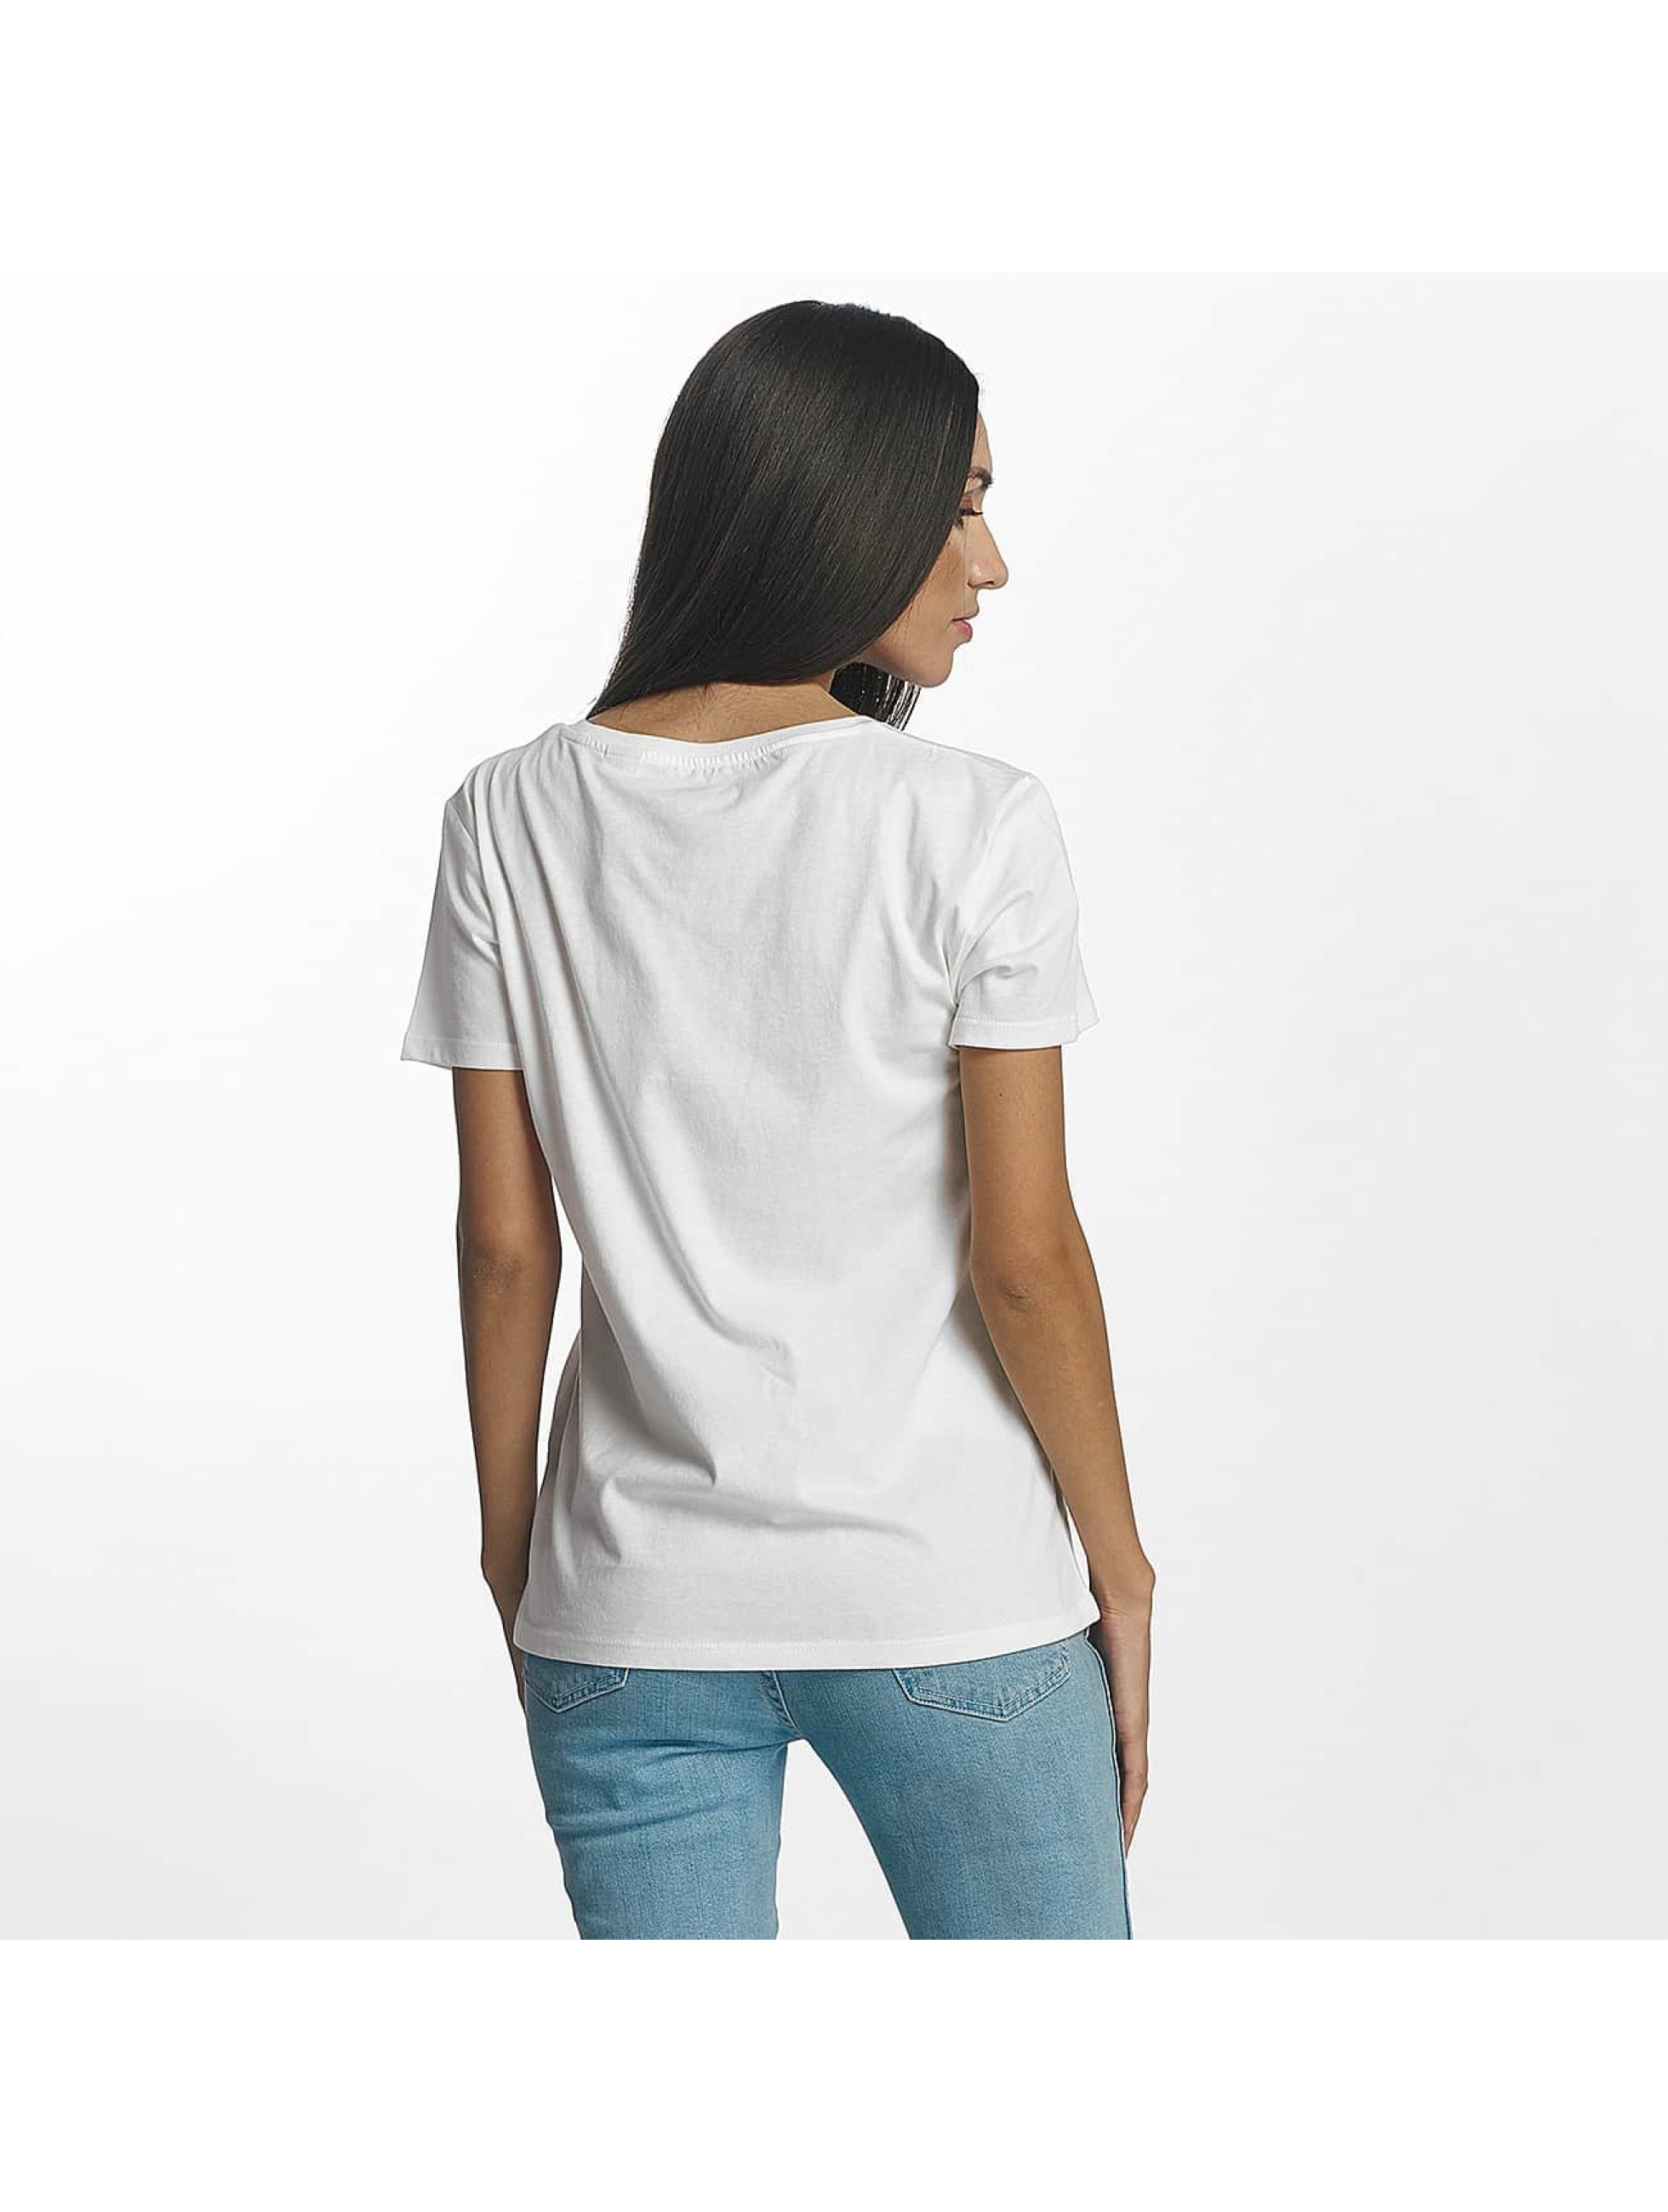 Levi's® T-Shirt Perfect Graphic Levi Strauss weiß